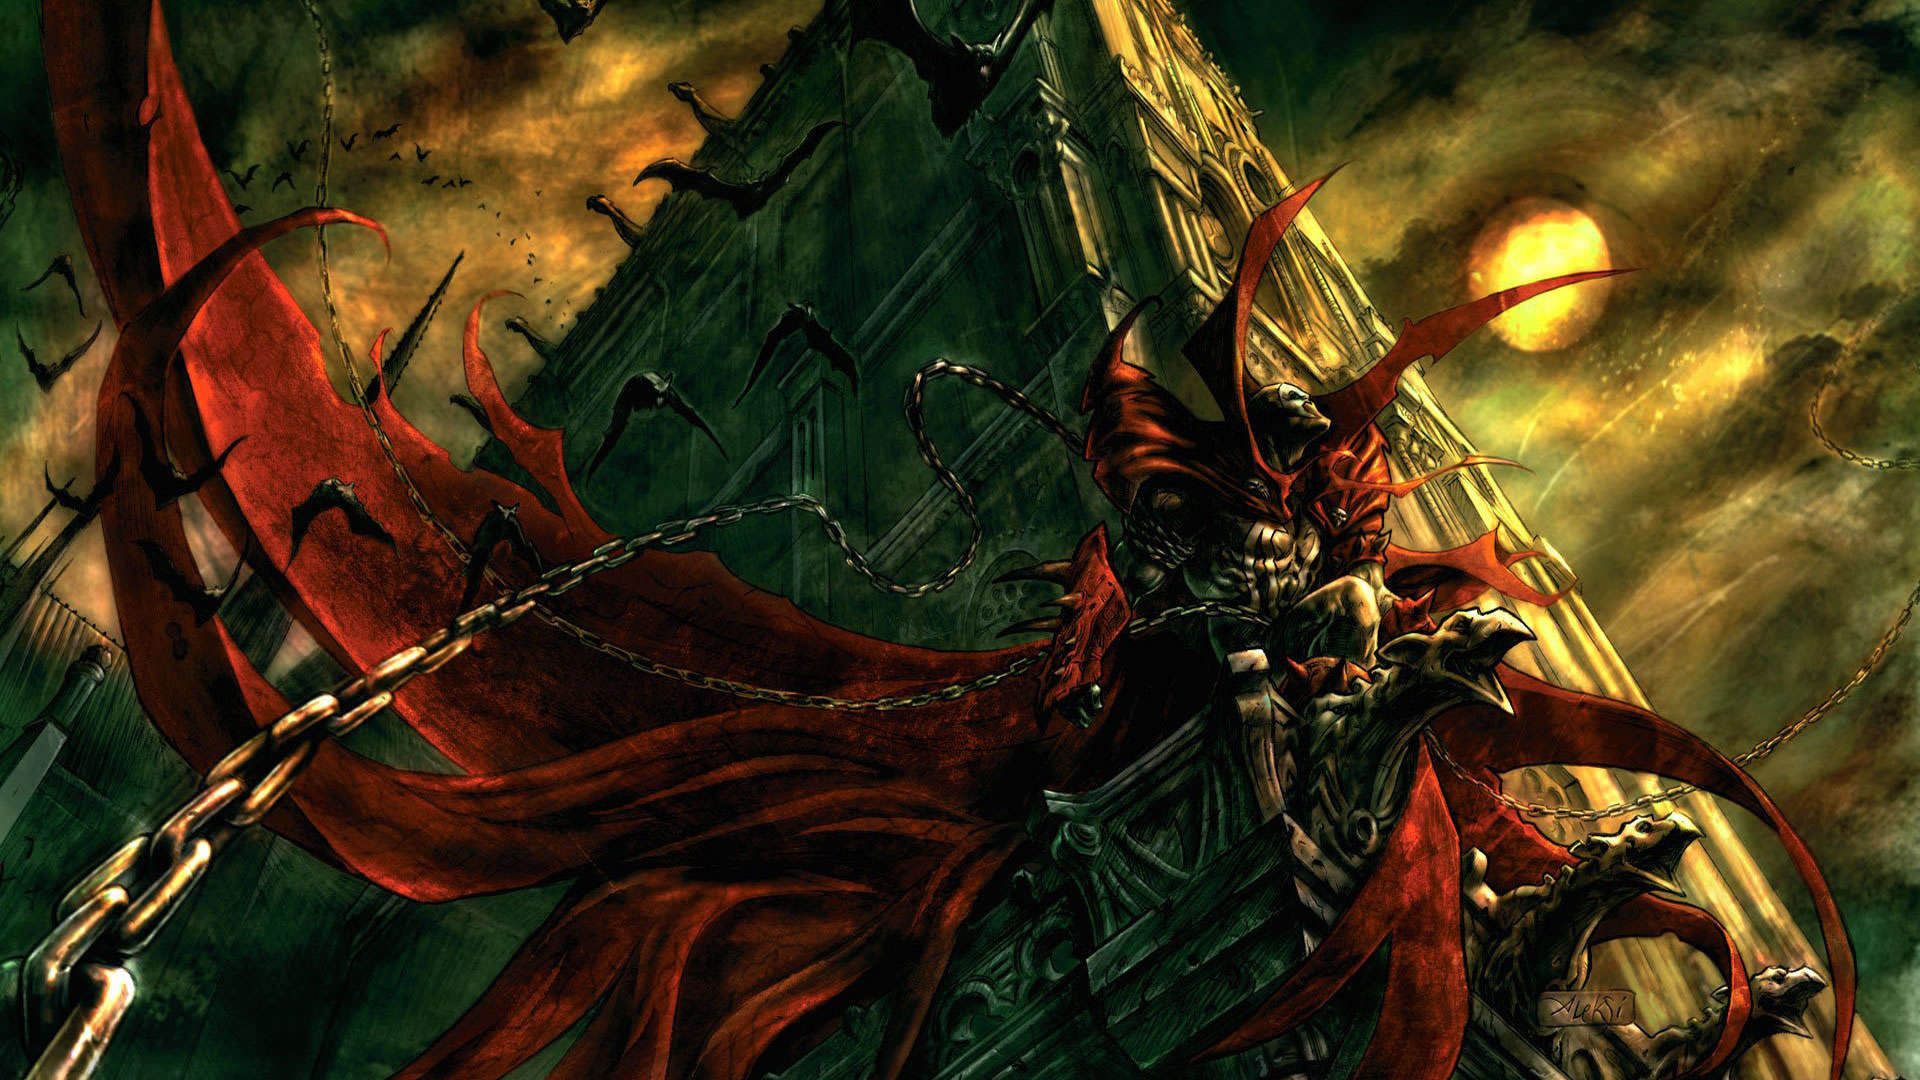 spawn wallpapers 1920x1080 - photo #1